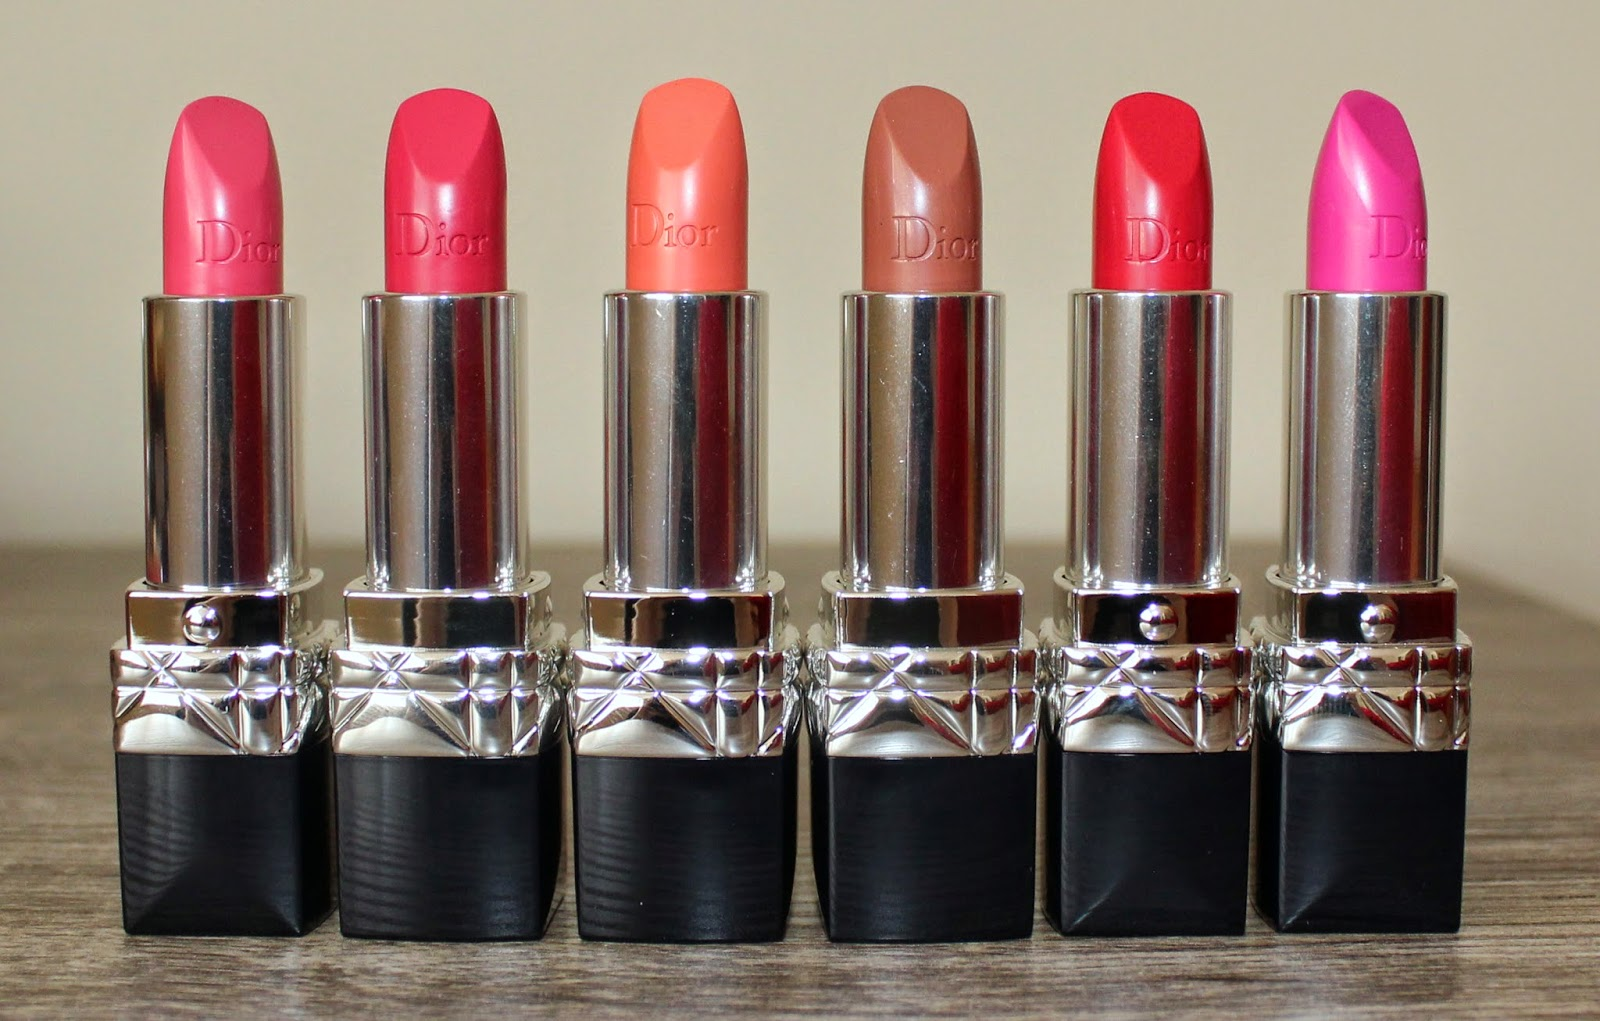 Dior Rouge Dior Lipsticks New Spring 2015 Shades